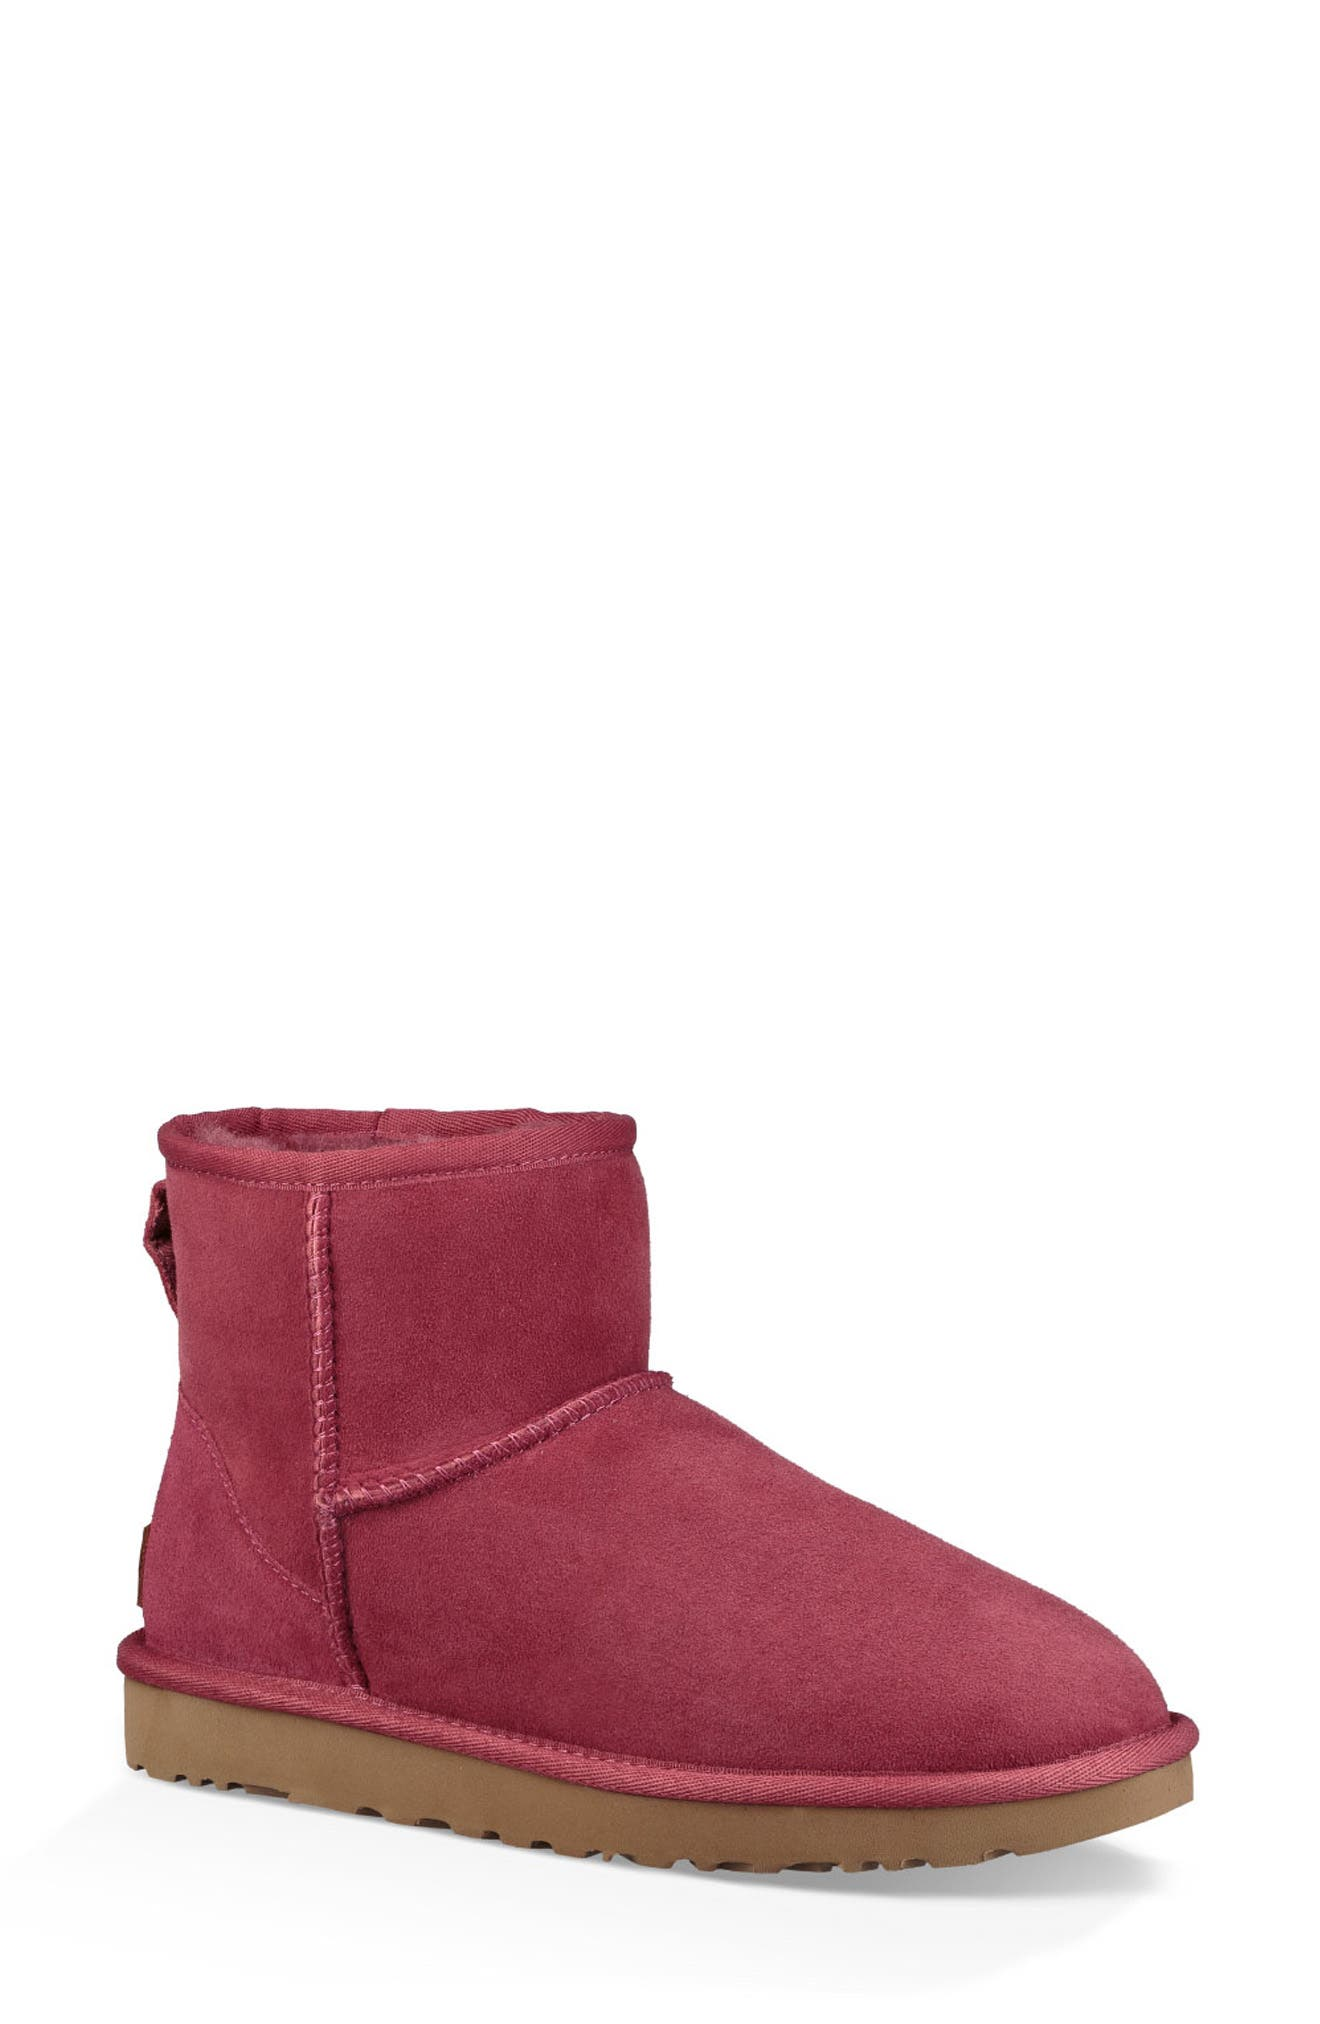 all red ugg boots